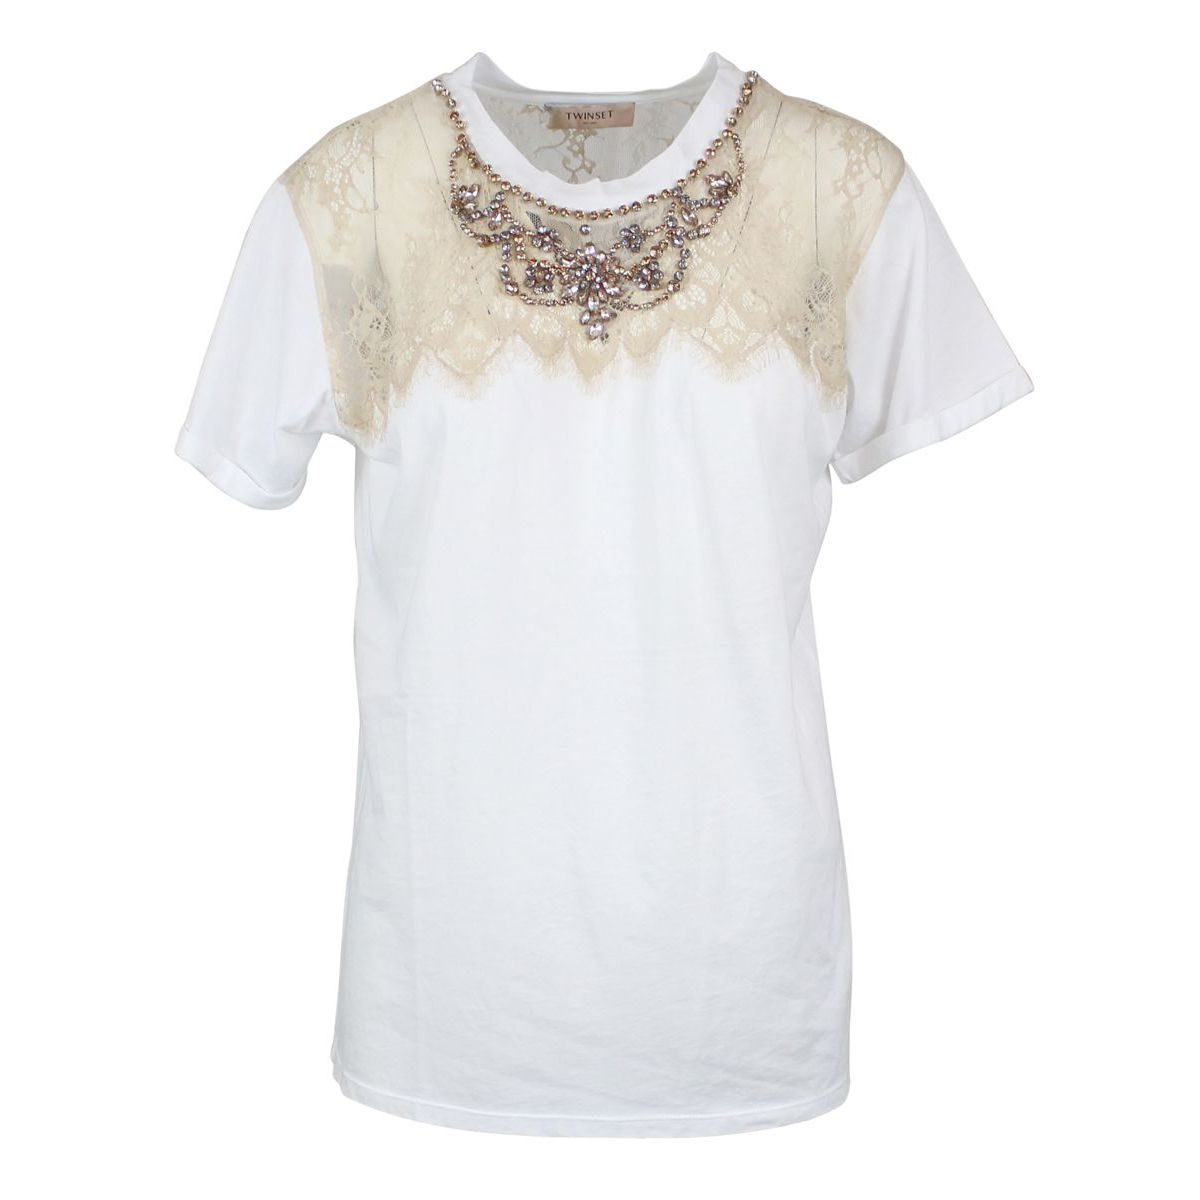 Cotton T-shirt with lace and rhinestone inserts White Twin-Set